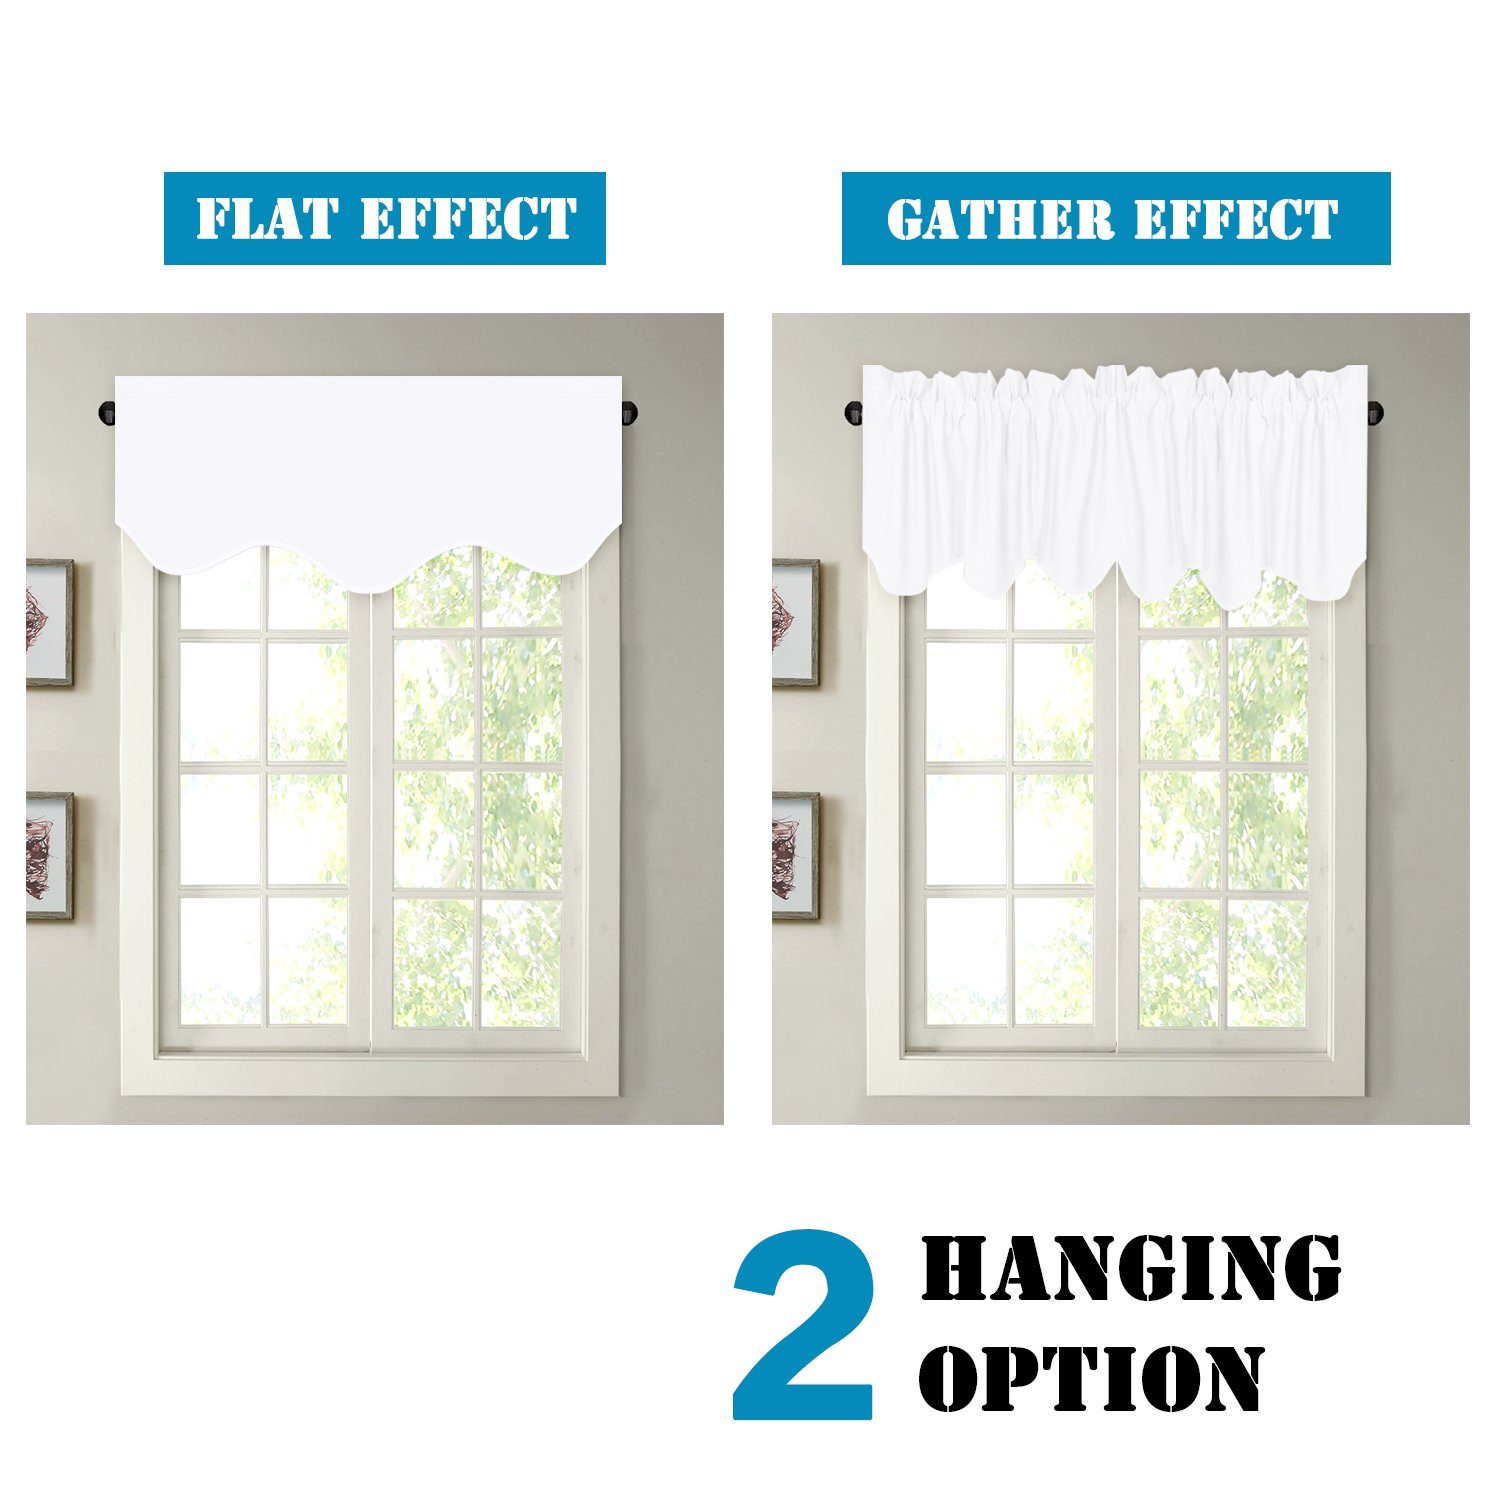 H.VERSAILTEX Privacy Protection Kitchen Valances for Windows Room Darkening Curtain Valances for Bedroom, Rod Pocket Top, 4 Pack, Pure White, 52 x 18 Inch by H.VERSAILTEX (Image #6)